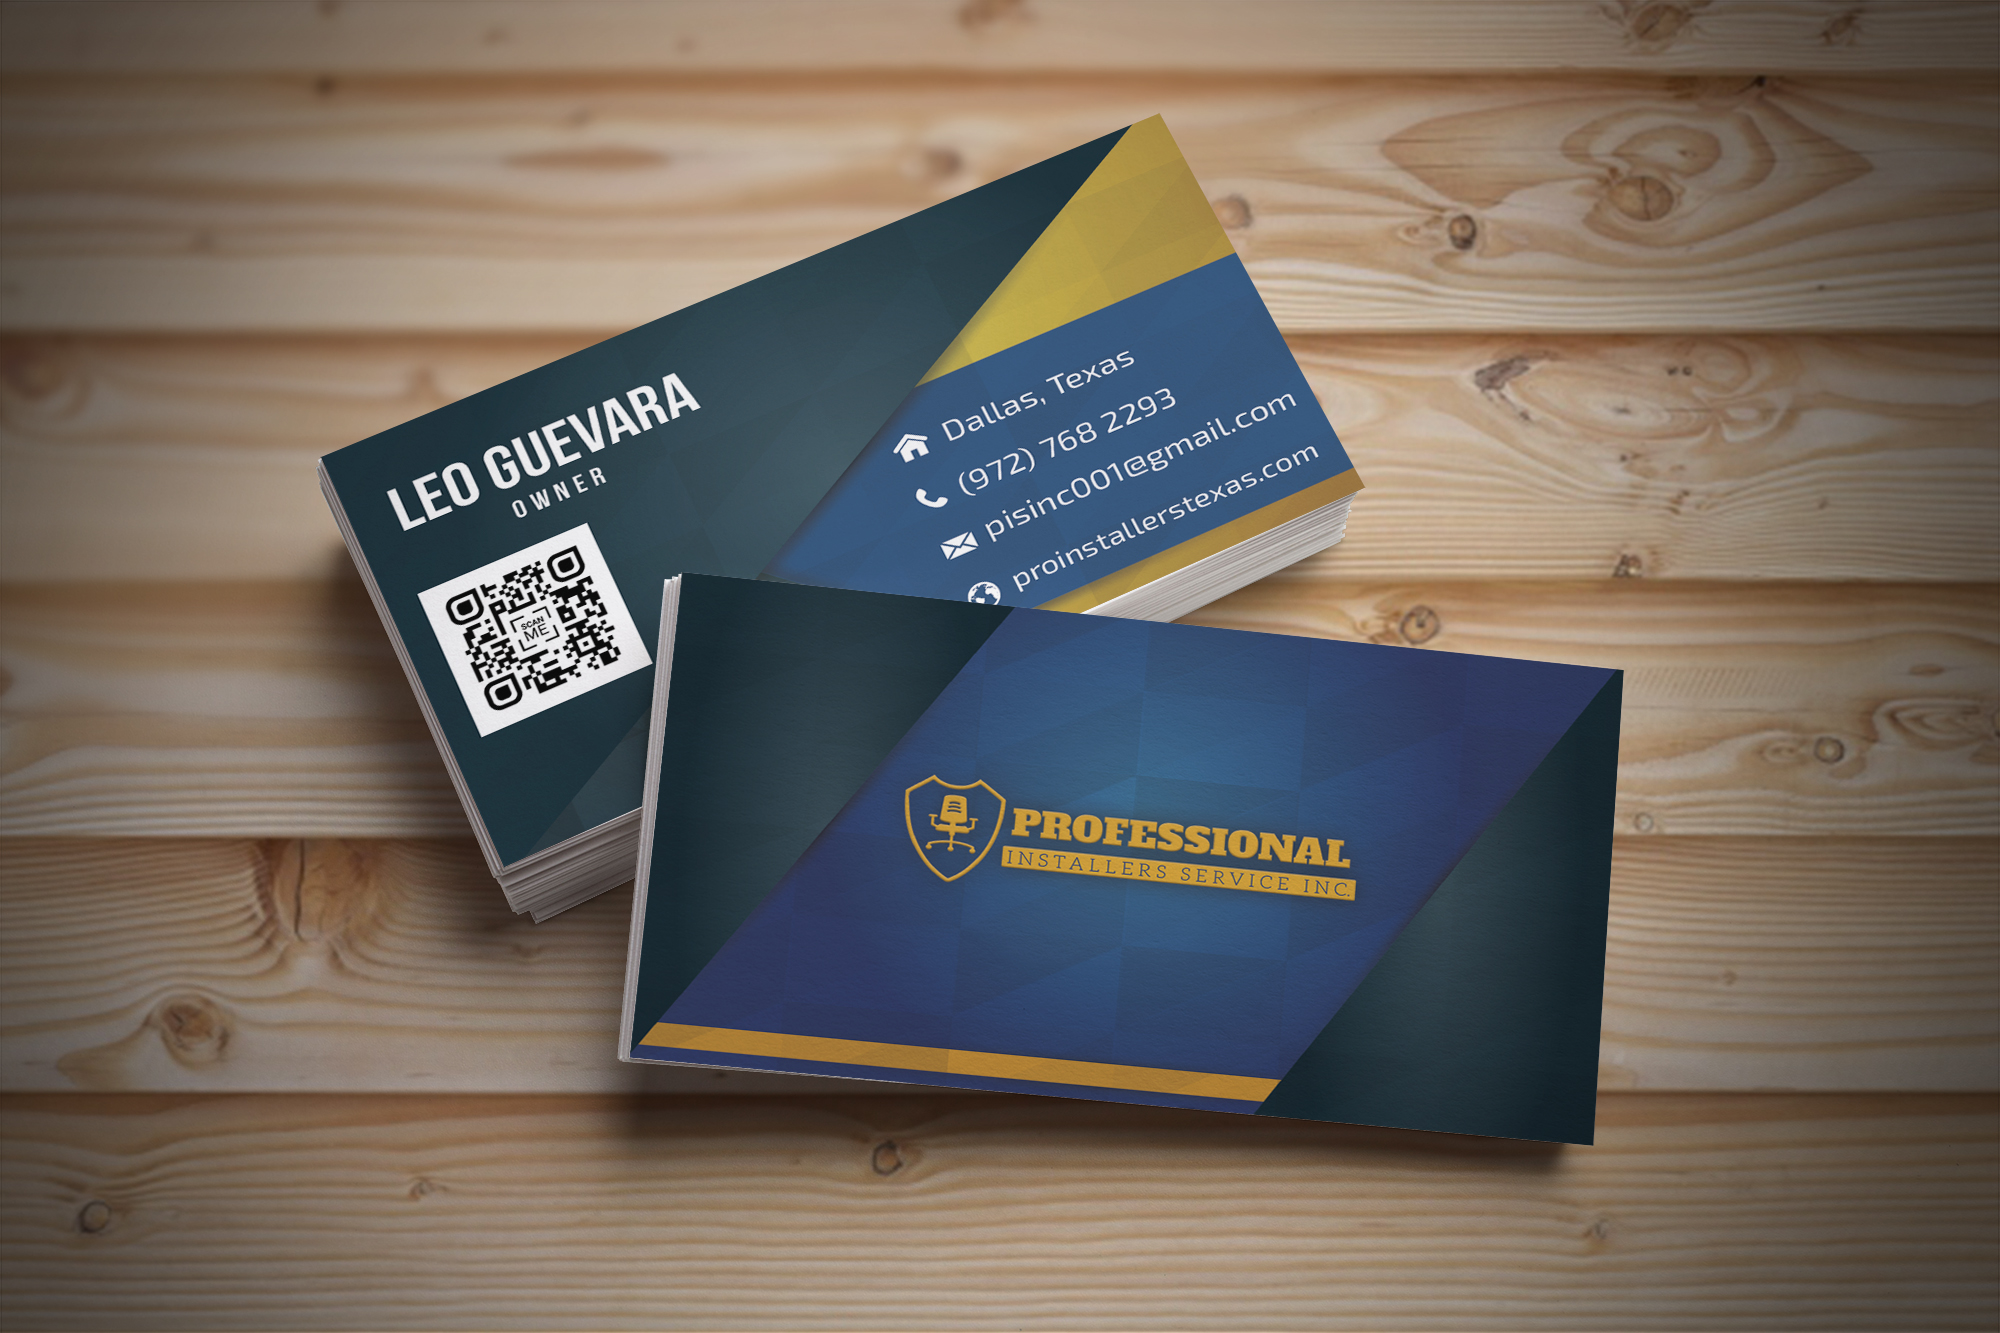 Professional Installers